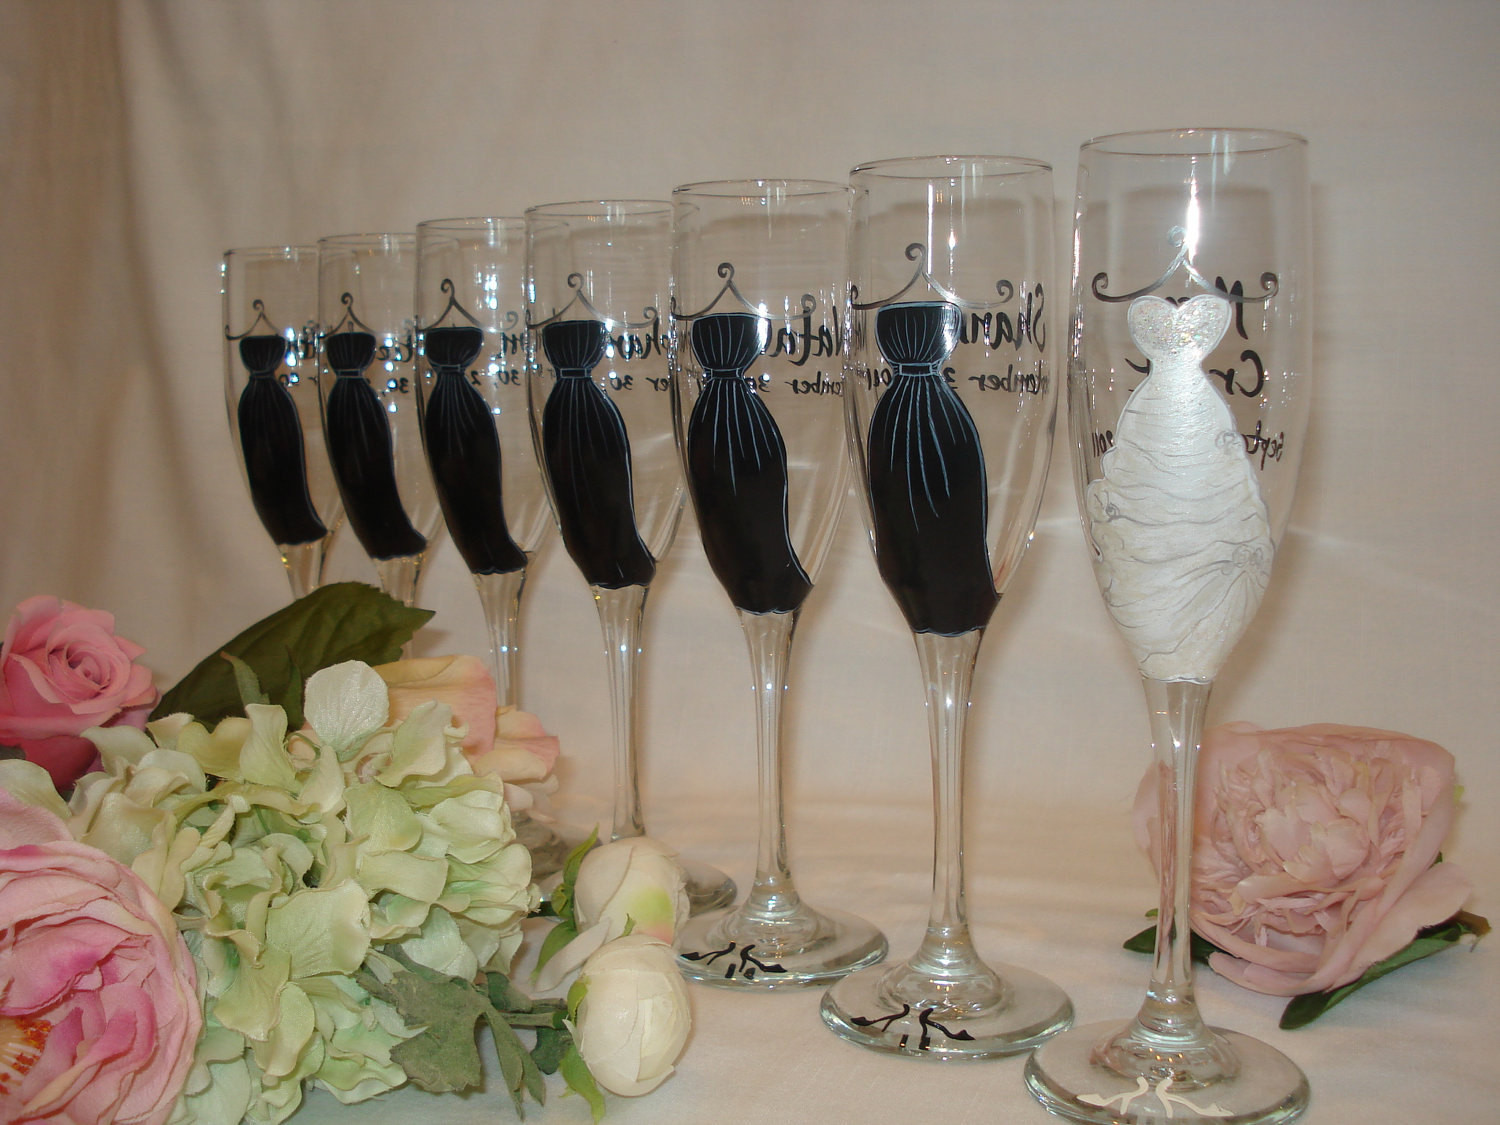 Best ideas about Wedding Party Gift Ideas . Save or Pin Personalized Hand Painted Bridesmaid Dress Wine Glasses GIFT Now.